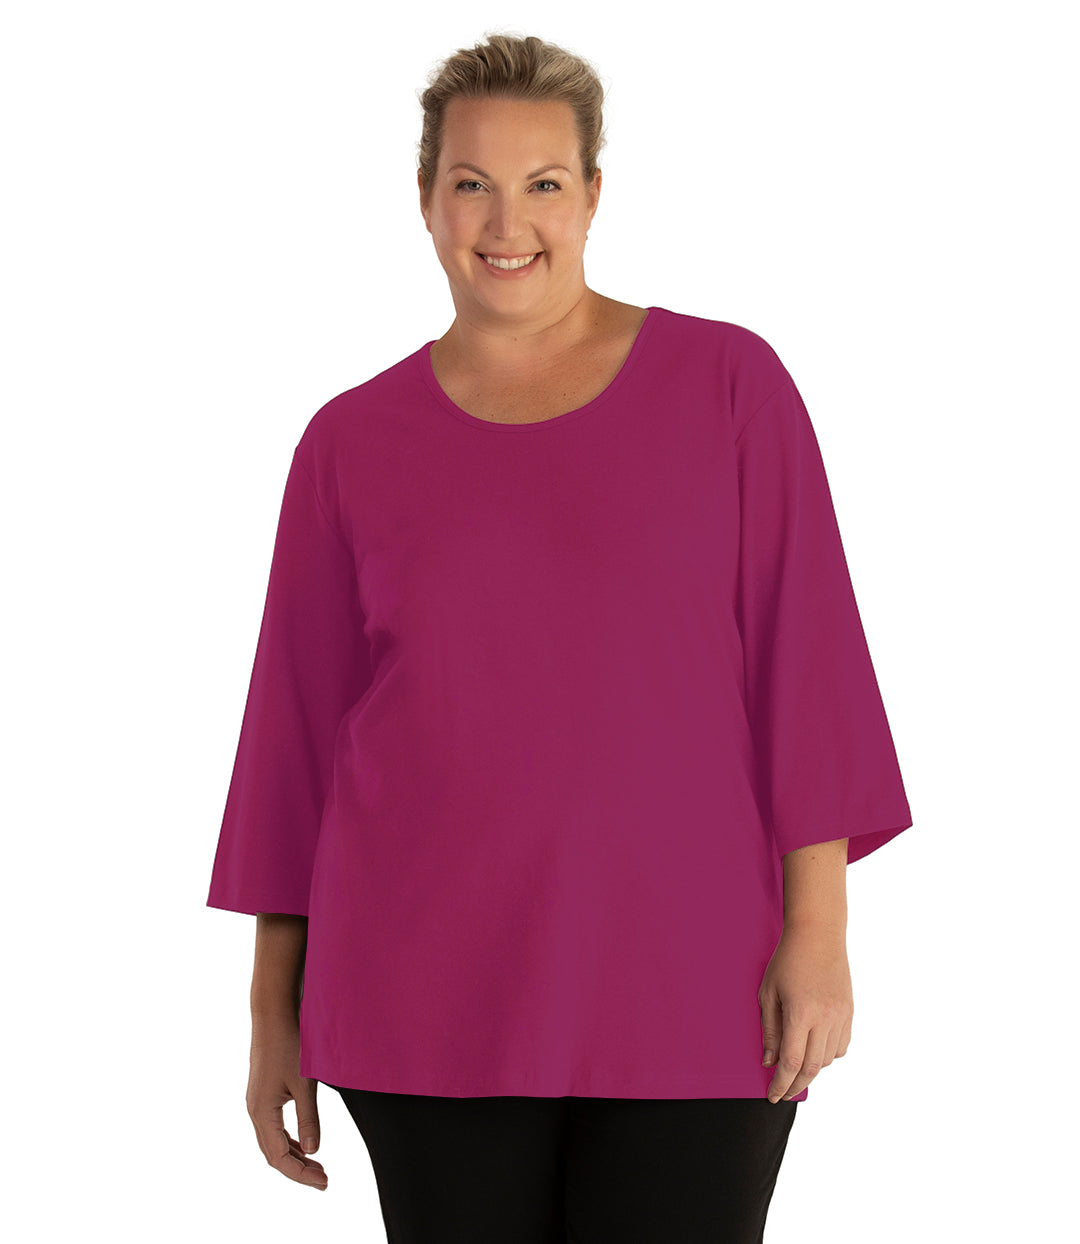 Stretch Naturals Scoop Neck 3/4 Sleeve Top Classic Colors-Tops 3/4 Sleeve-Hop Wo Trading Co Ltd-XL-Merlot-JunoActive